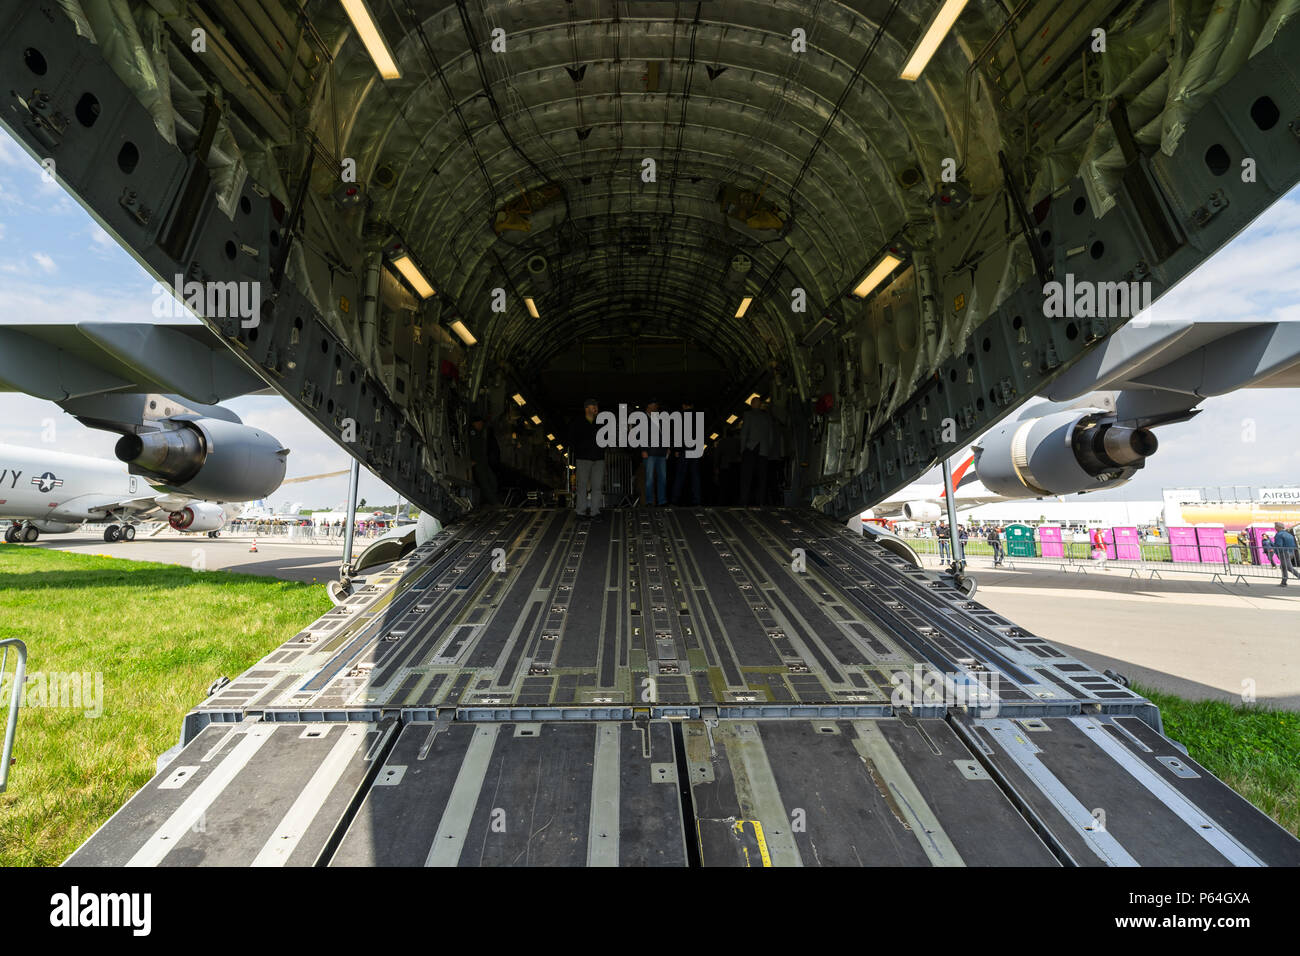 The cargo compartment of the strategic and tactical airlifter Boeing C-17 Globemaster III. Exhibition ILA Berlin Air Show 2018. - Stock Image